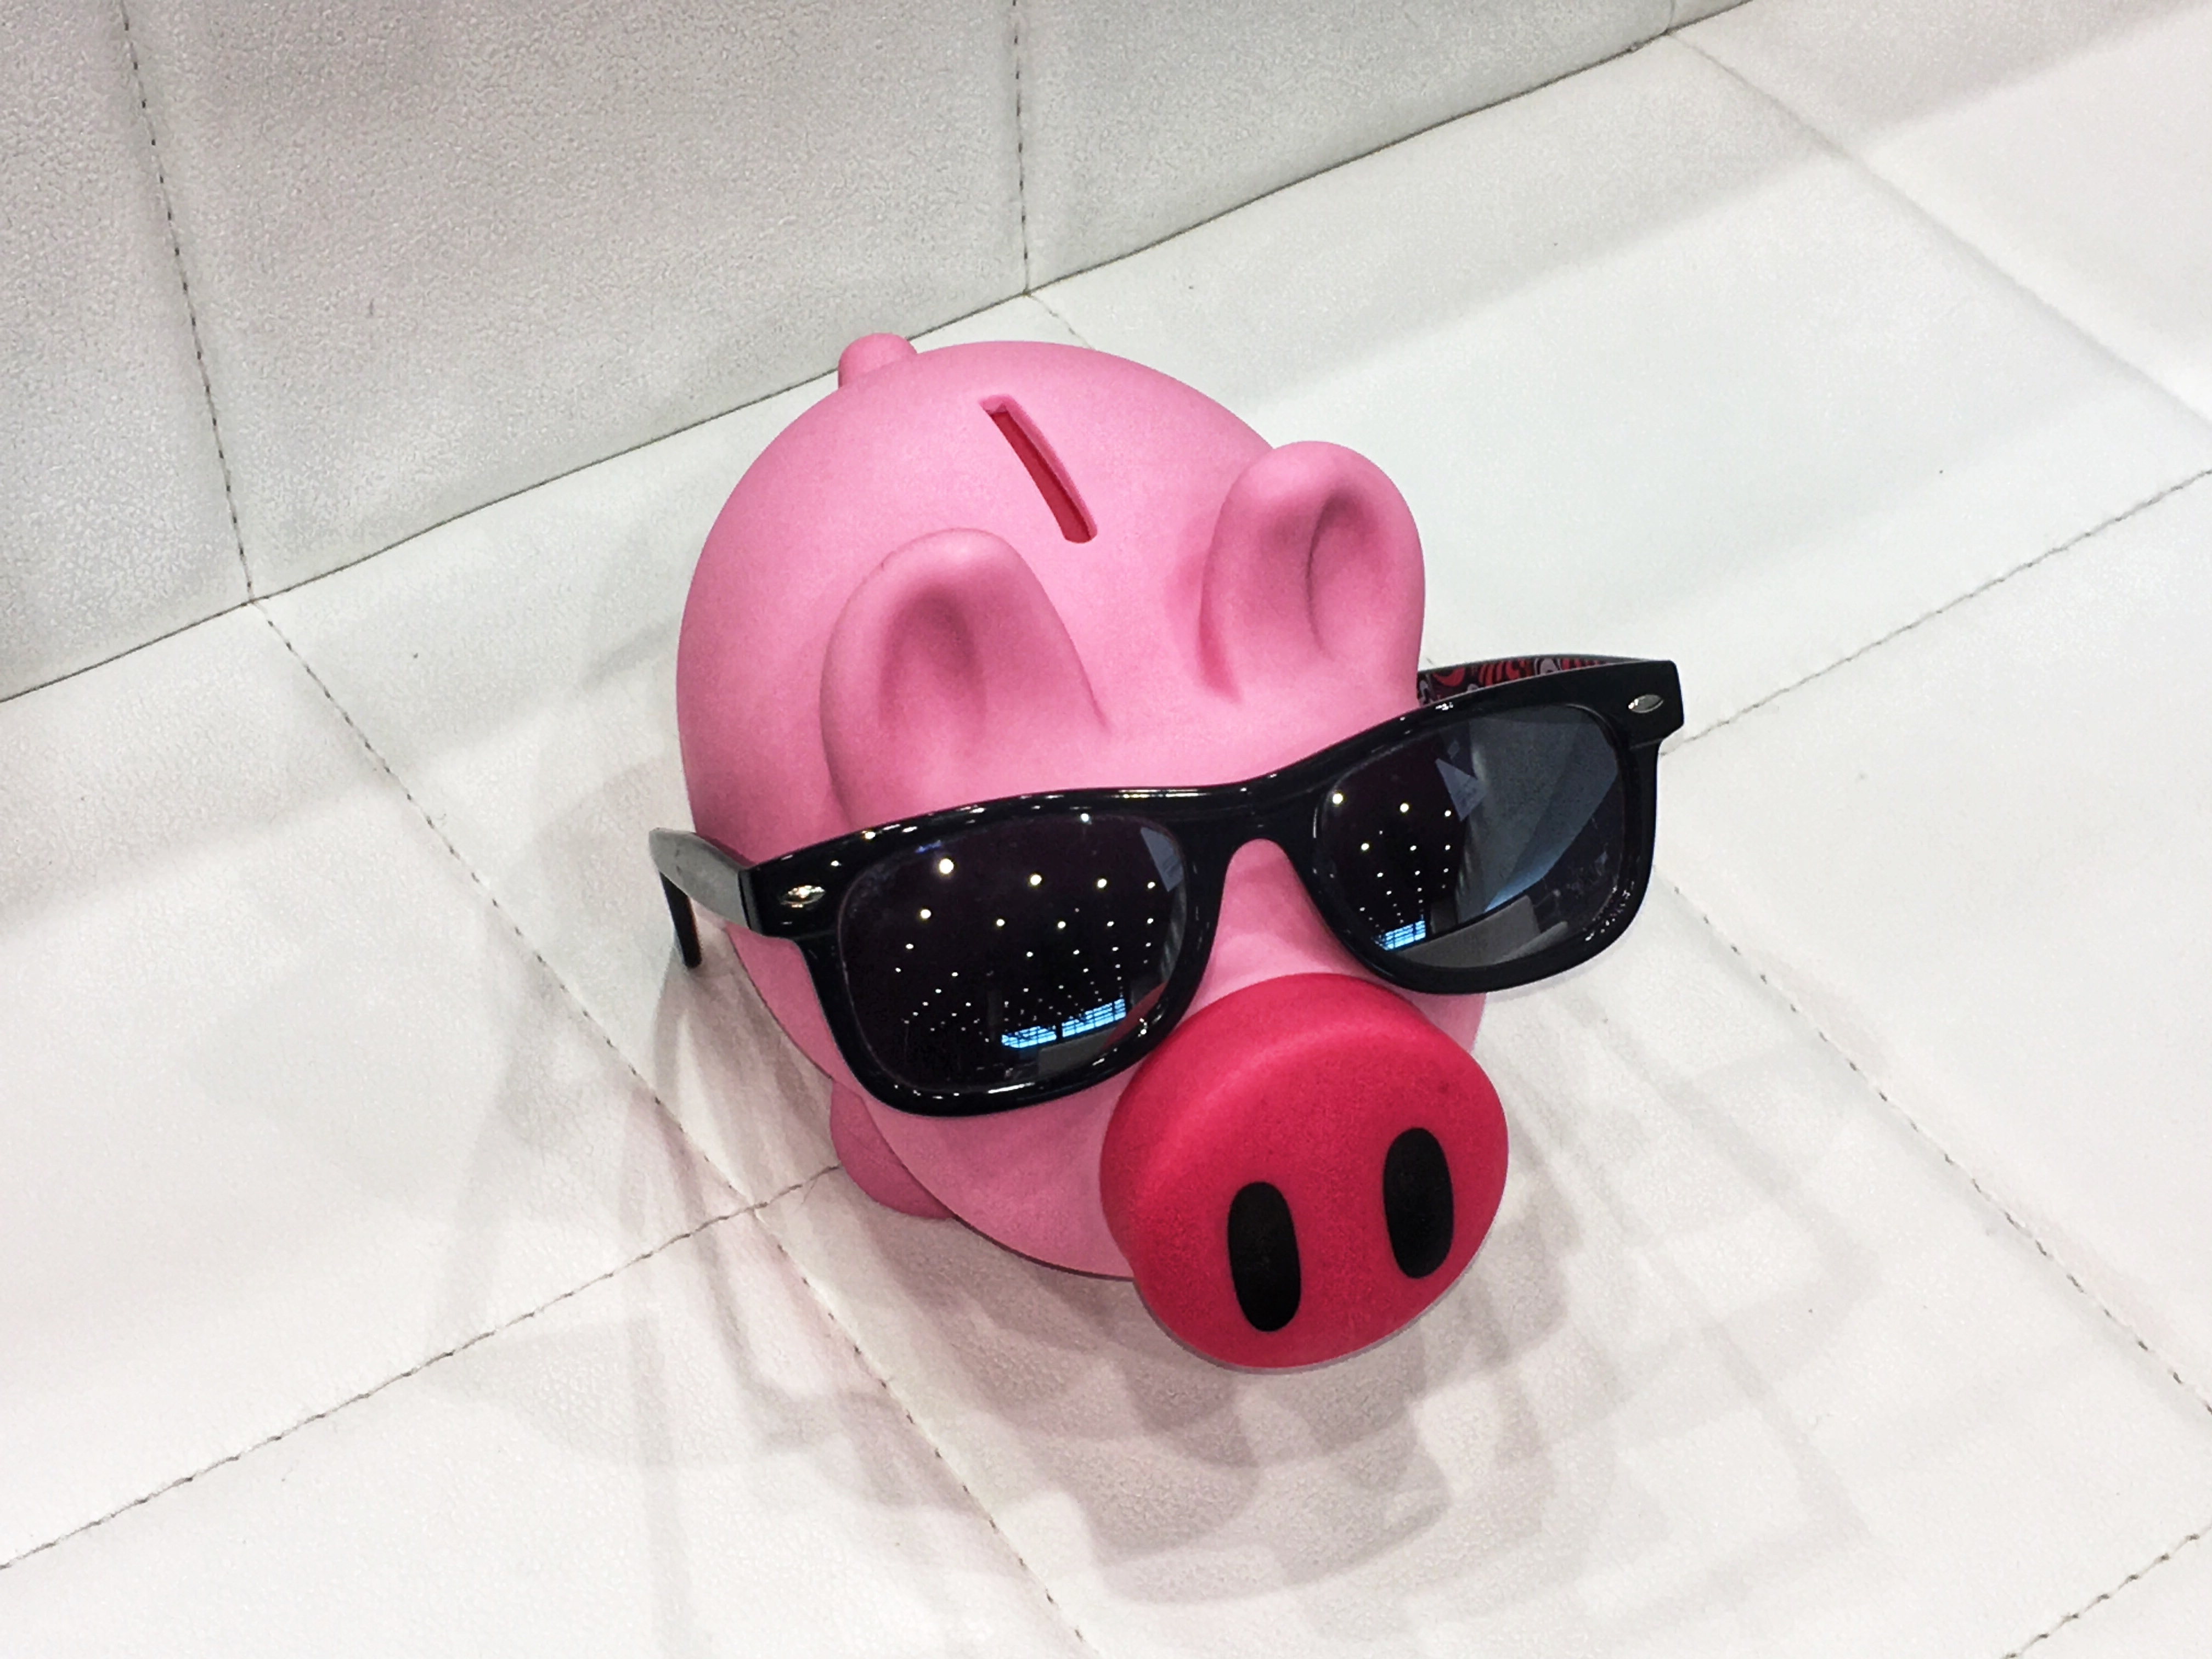 The Z5 Piggy Bank gets his Terminator on to talk about technology outpacing usage.